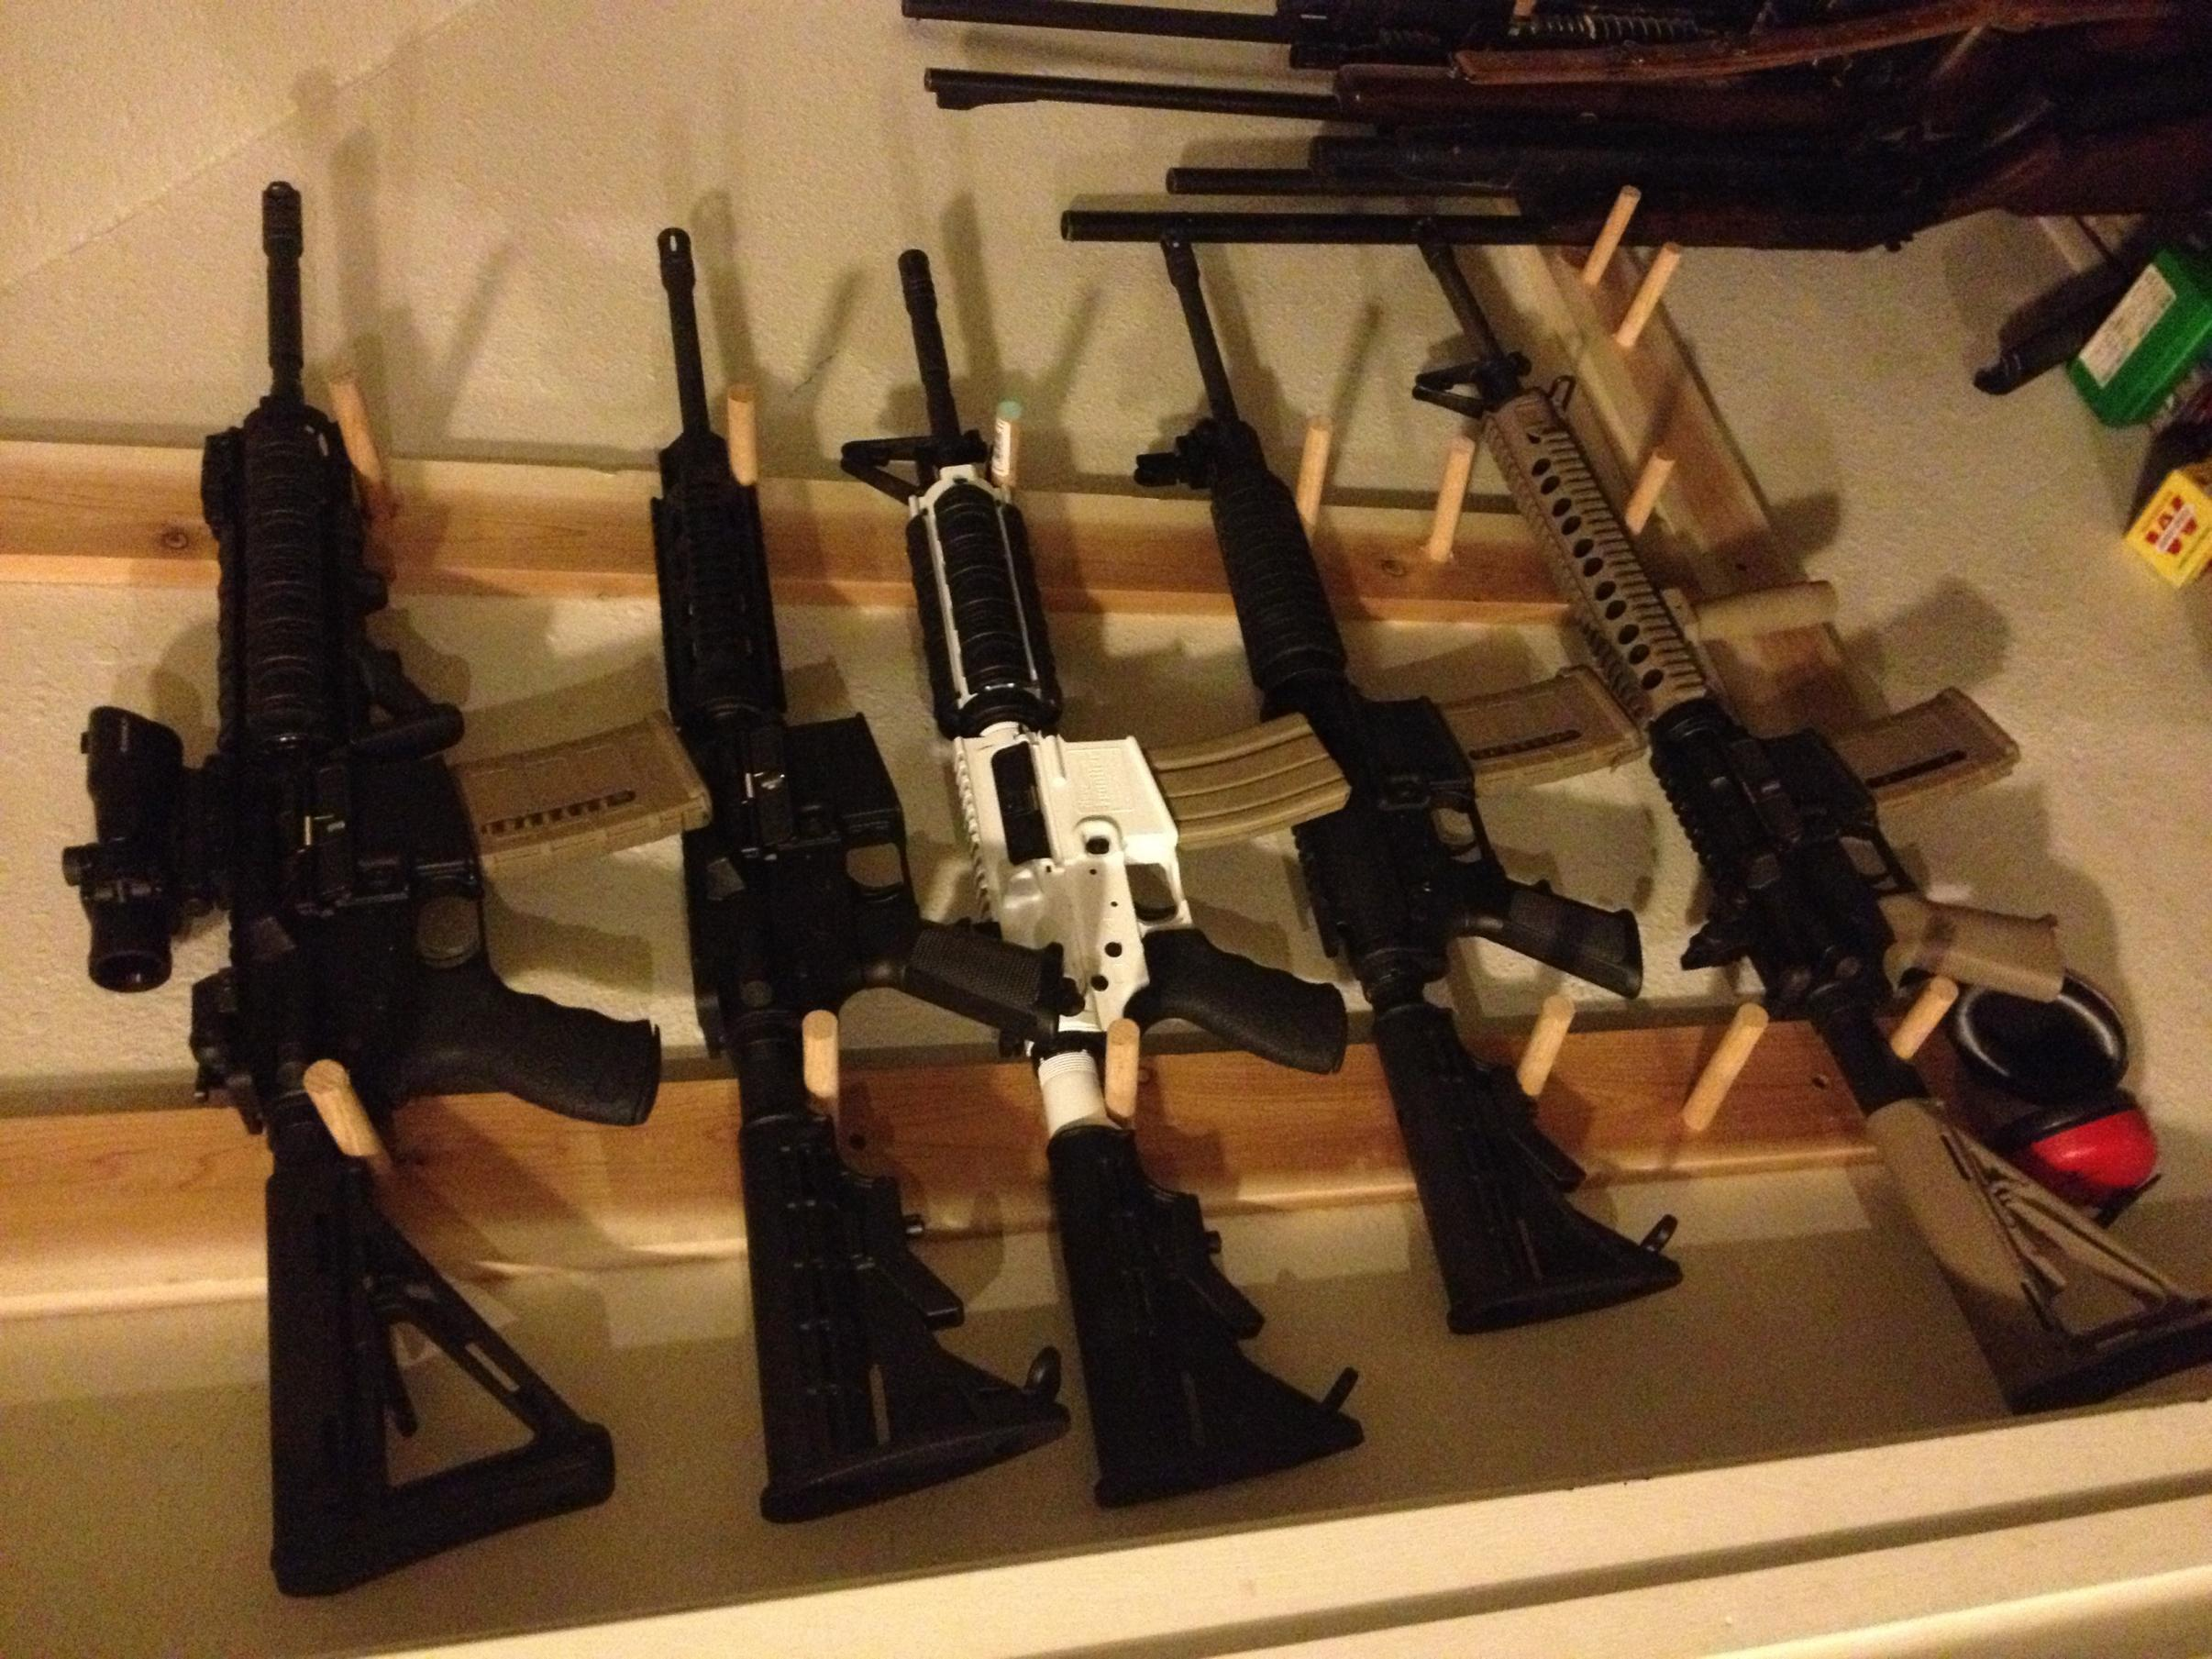 My wife brought up a good conversation.... How many ar15s is two many-image.jpg